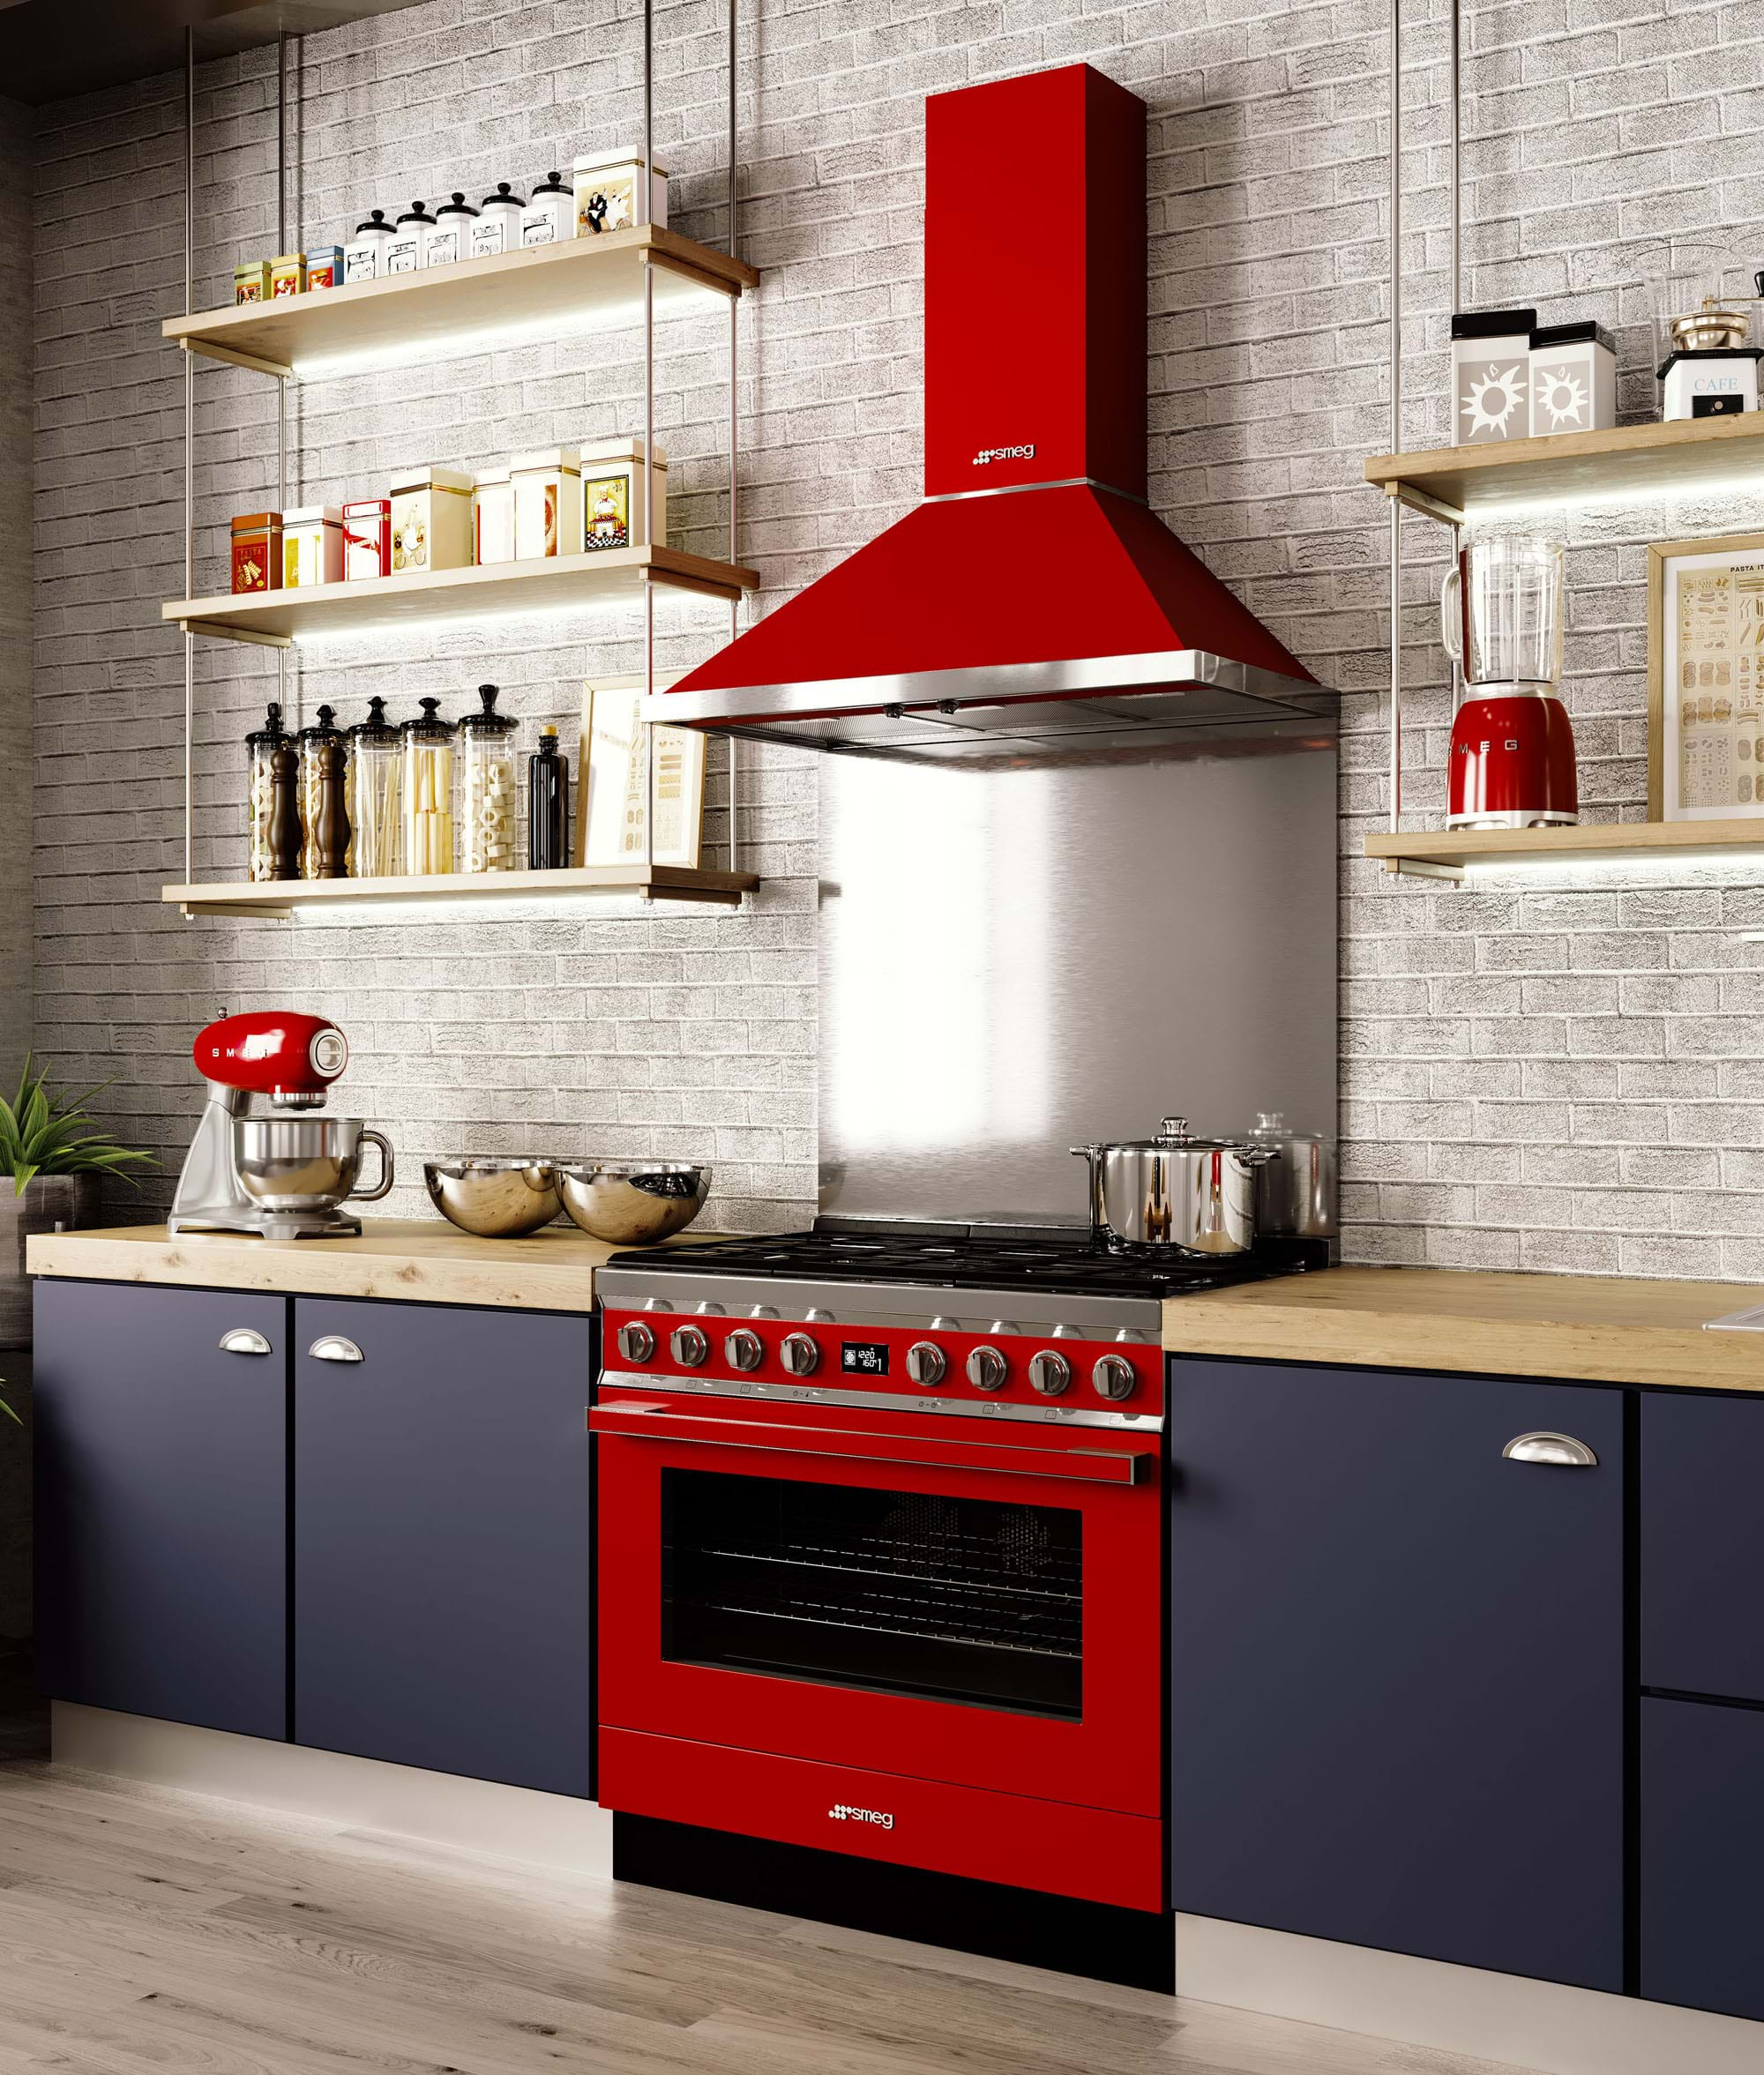 8 Top Trends in Kitchen Design for 2020 | Kitchens ...